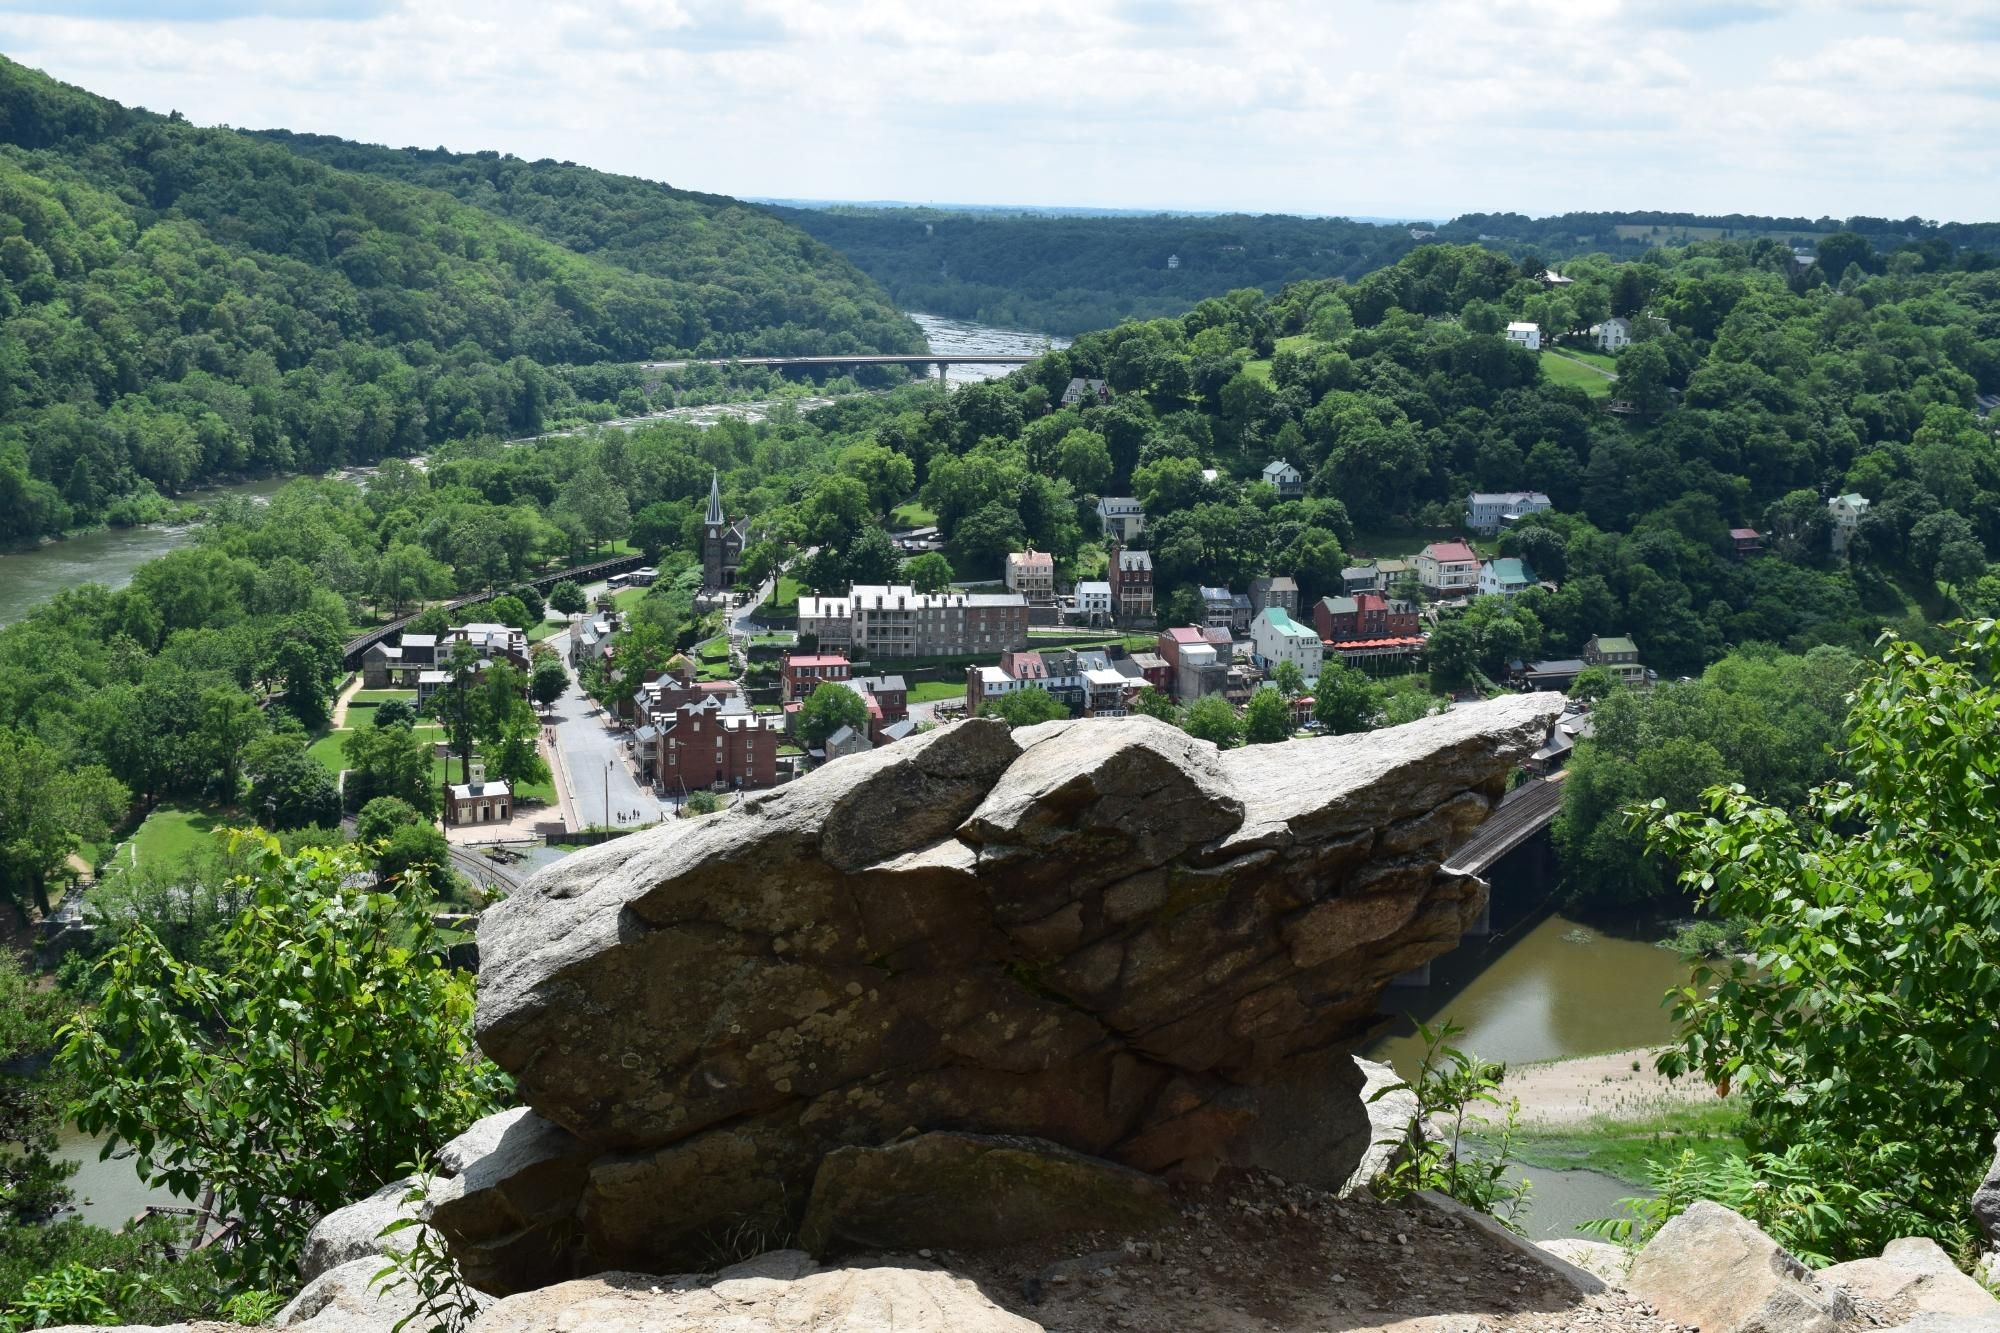 Harpers Ferry National Historical Park WV Photos Reviews - Trip advisor harpers ferry